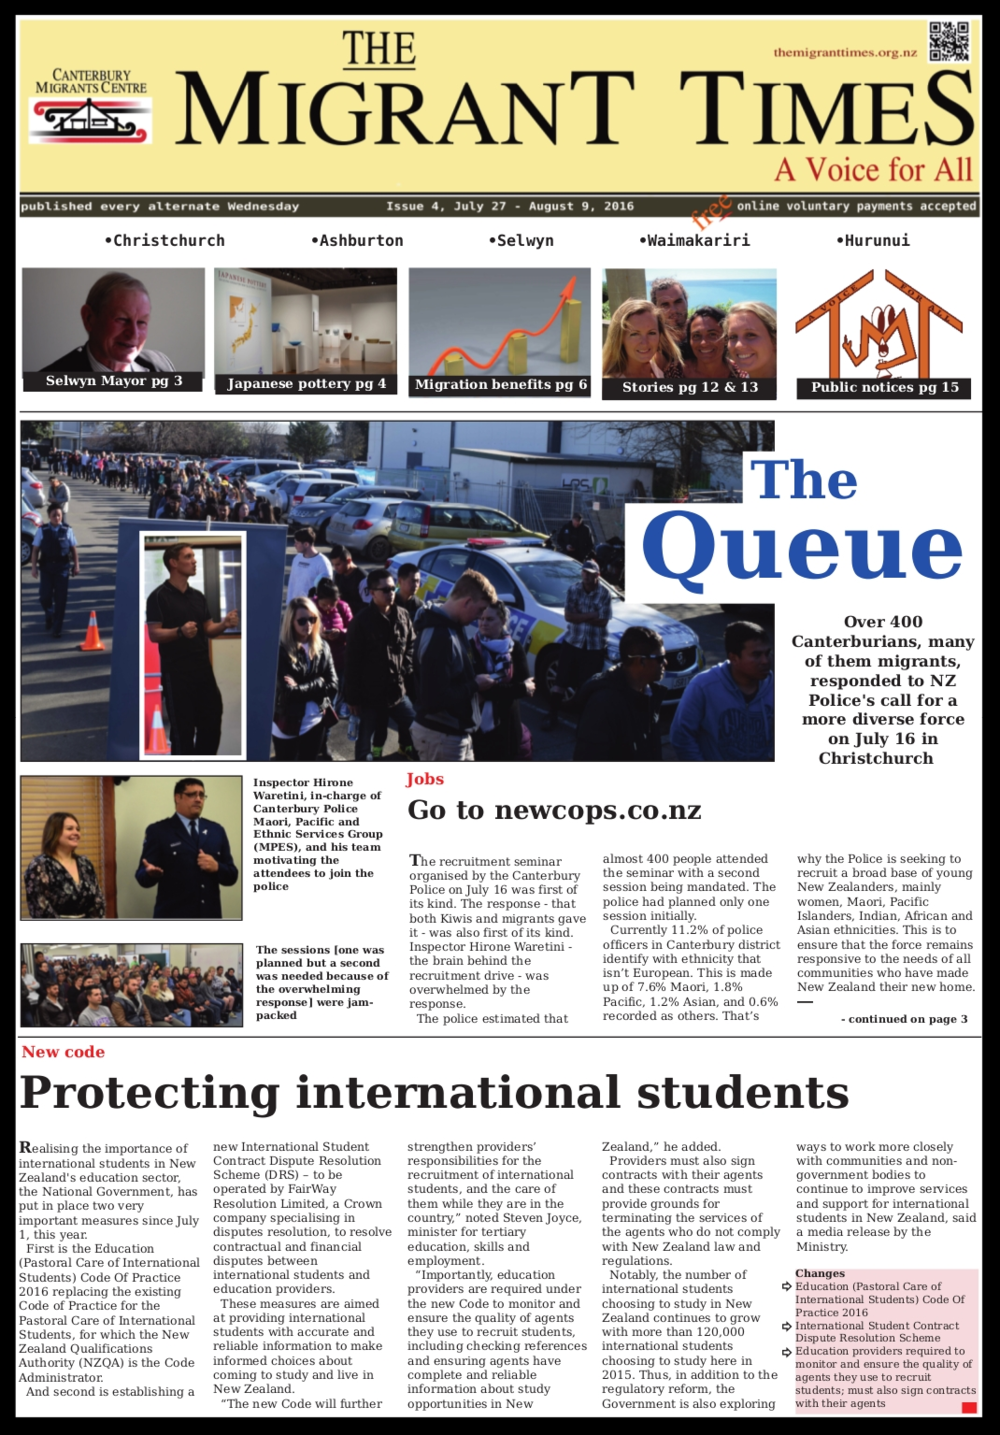 Issue 4, July 27 - August 9, 2016